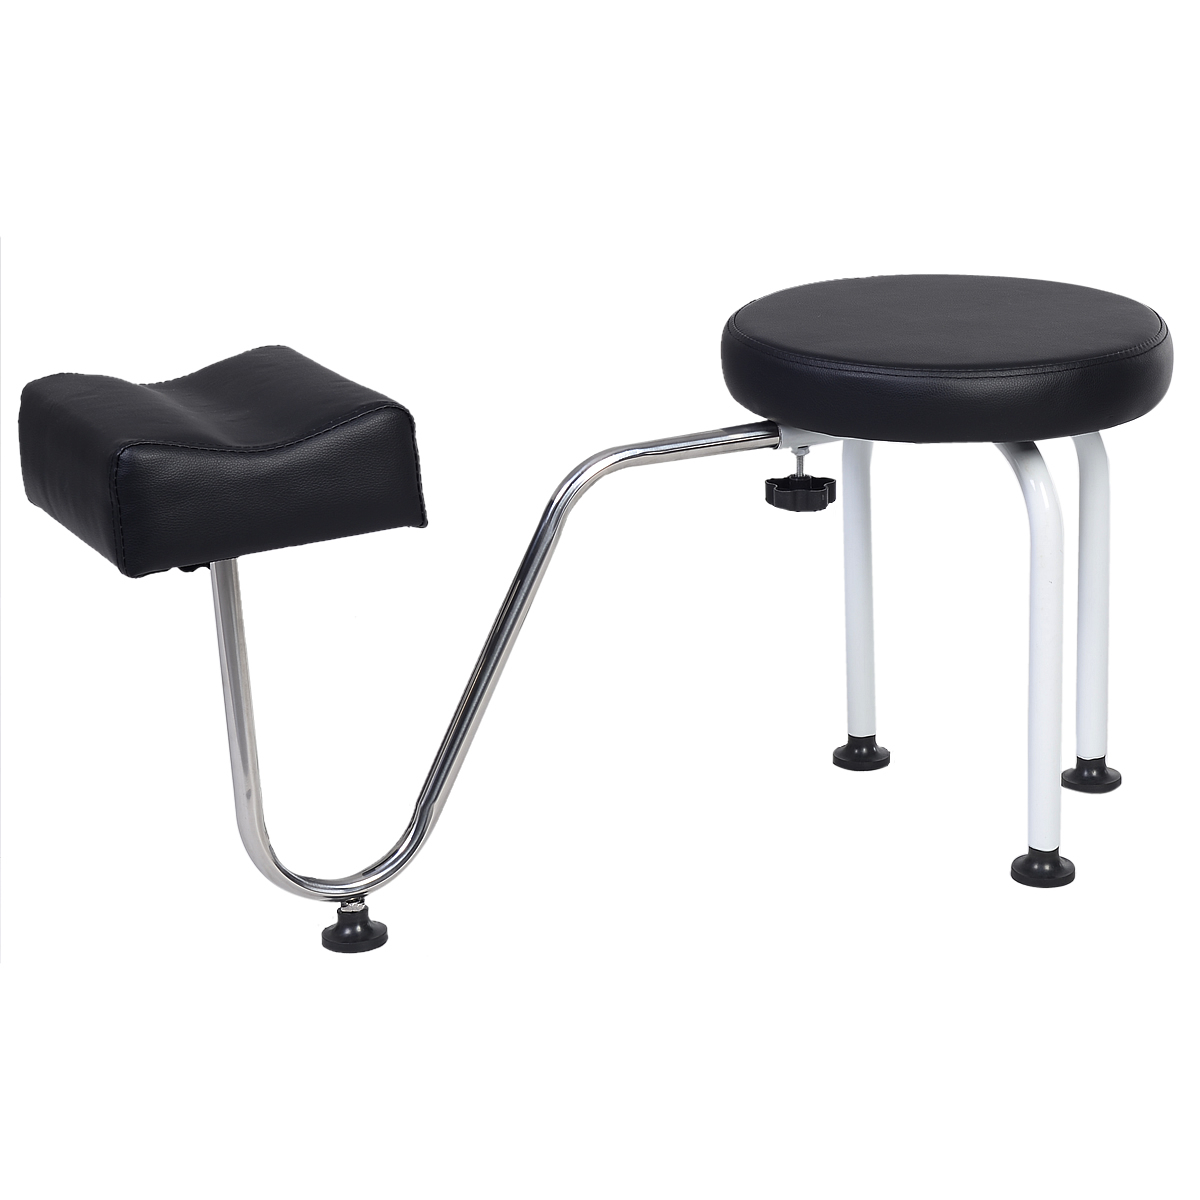 Tremendous Adjustable Pedicure Manicure Foot Rest Stool Chair Caraccident5 Cool Chair Designs And Ideas Caraccident5Info